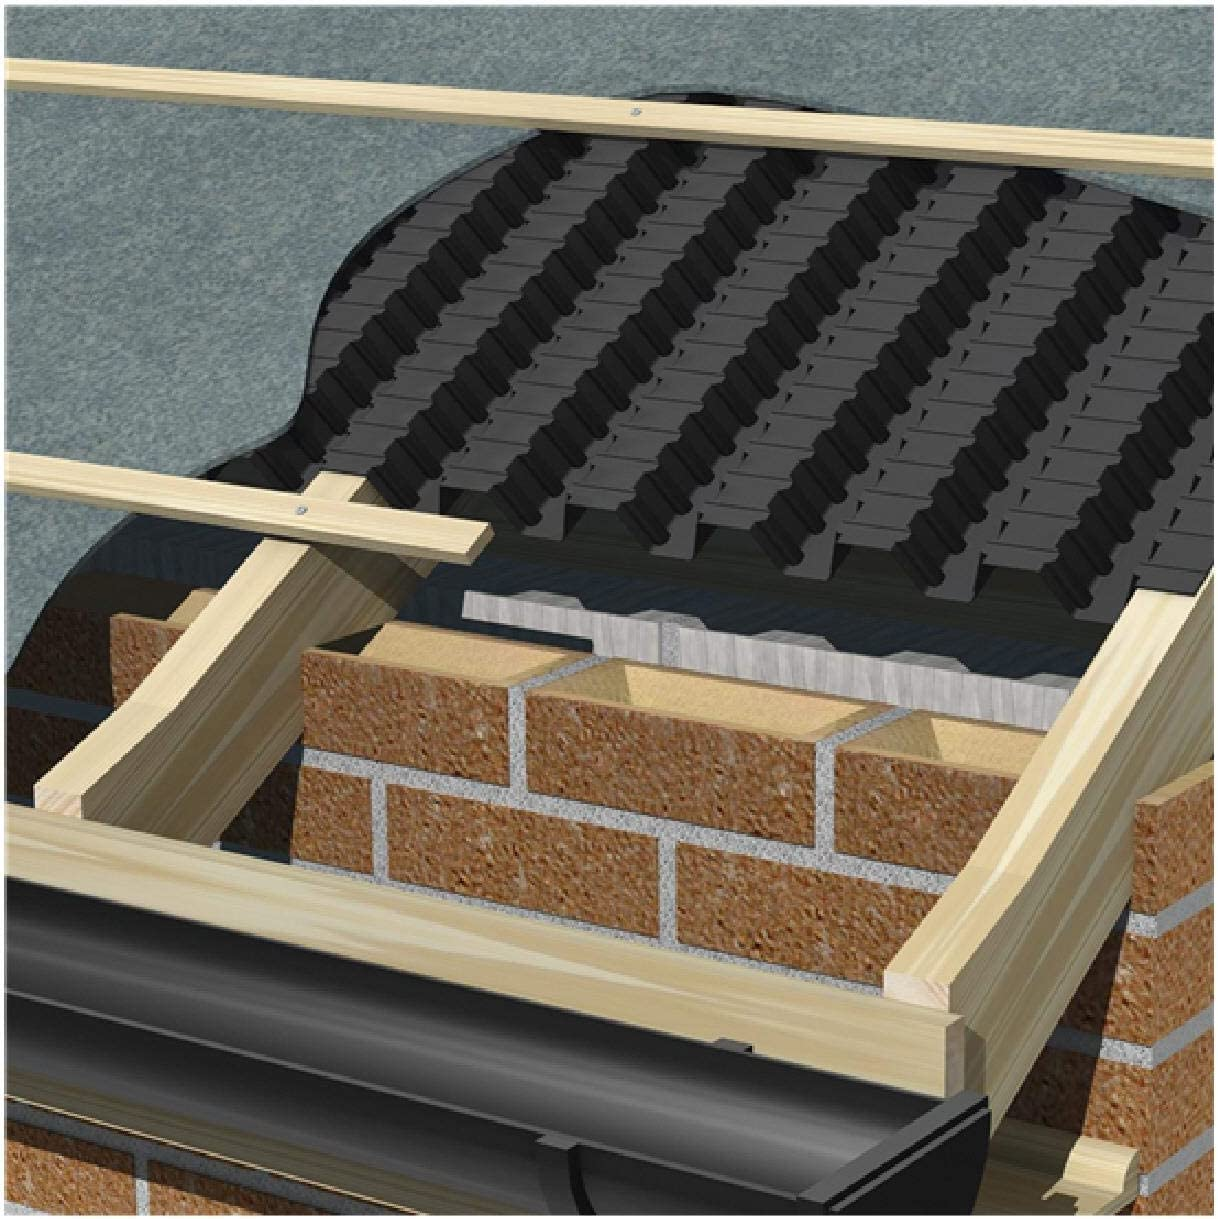 Manthorpe Continuous Roll Eaves Panel Vent 325mm x 6 Metres for Roof Ventilation